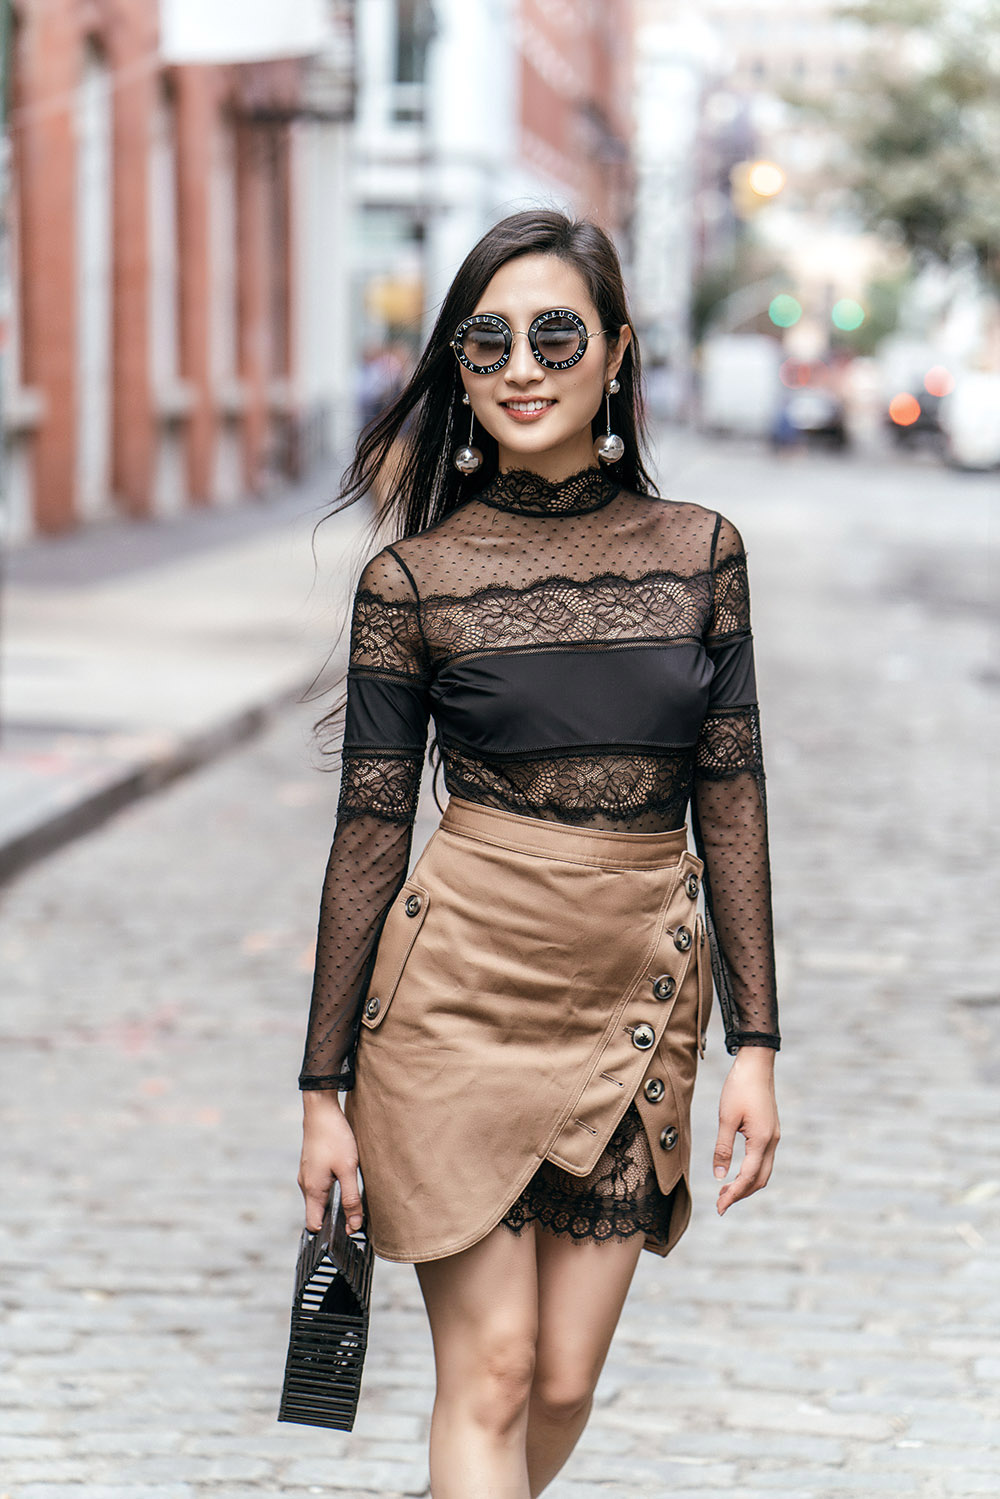 How To Wear Mules This Fall | Of Leather and Lace - A Fashion & Travel Blog by Tina Lee | Self Portrait Utility Skirt, Thistle & Spire Lace Bodysuit, Cult Gaia Bag, Gucci Round Sunglasses